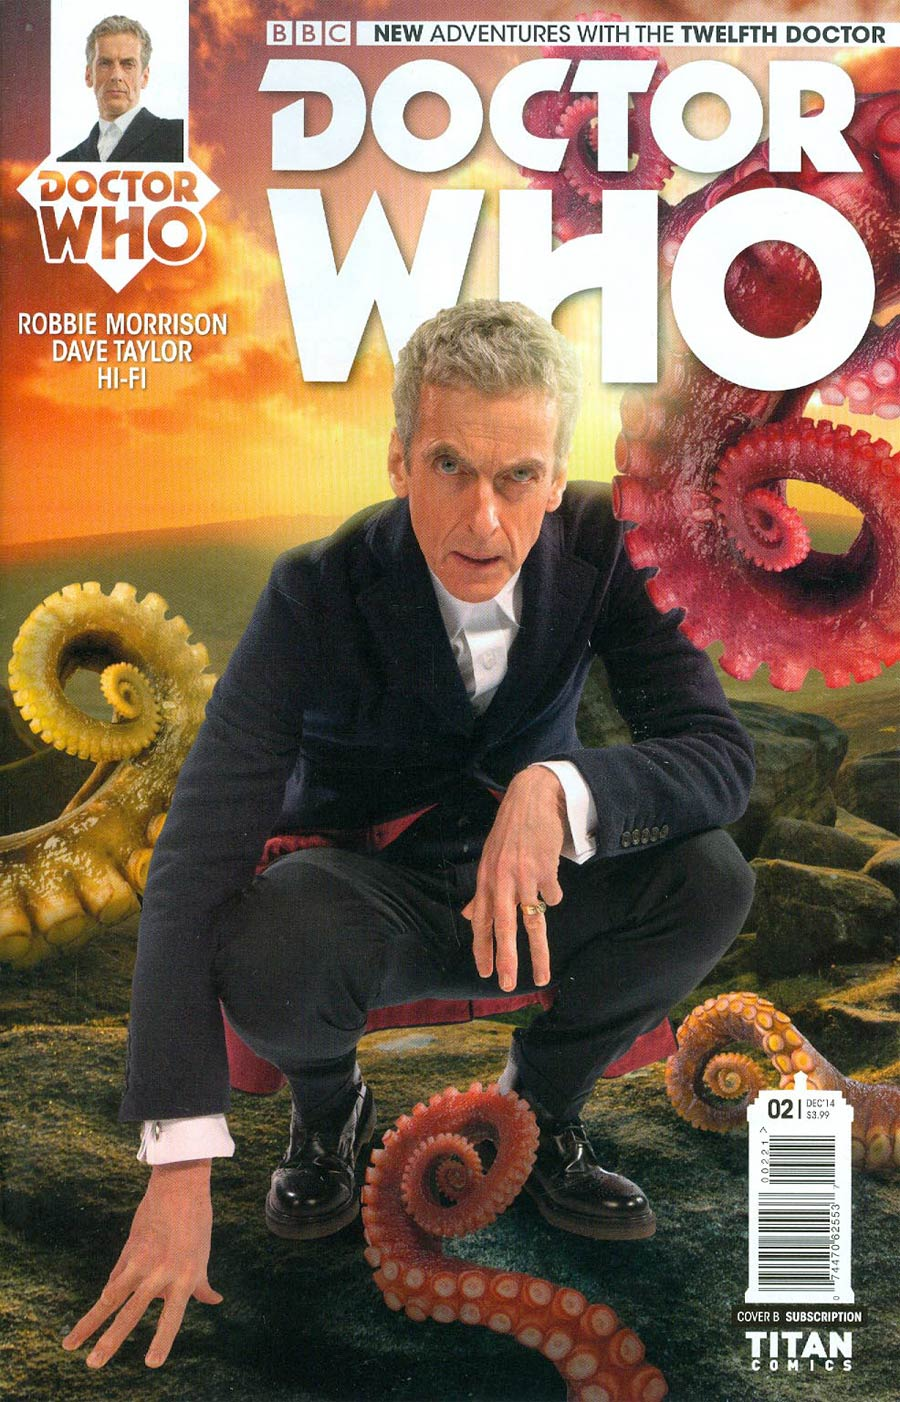 Doctor Who 12th Doctor #2 Cover B Variant Photo Subscription Cover